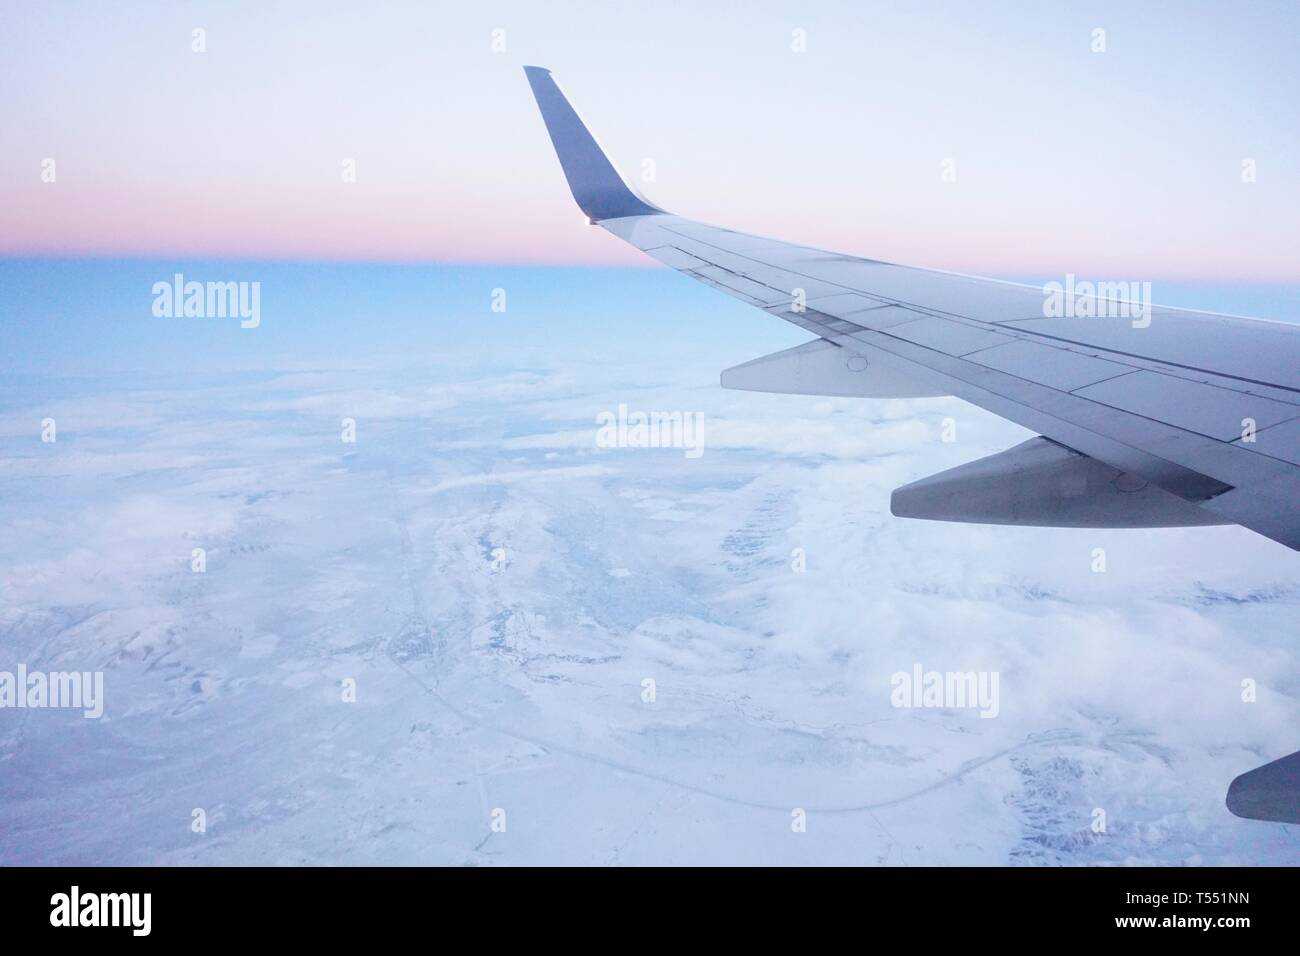 Airplane wing over snowy earth in early morning, daybreak, dawn. Pastel earth and sky with pink horizon. Stock Photo